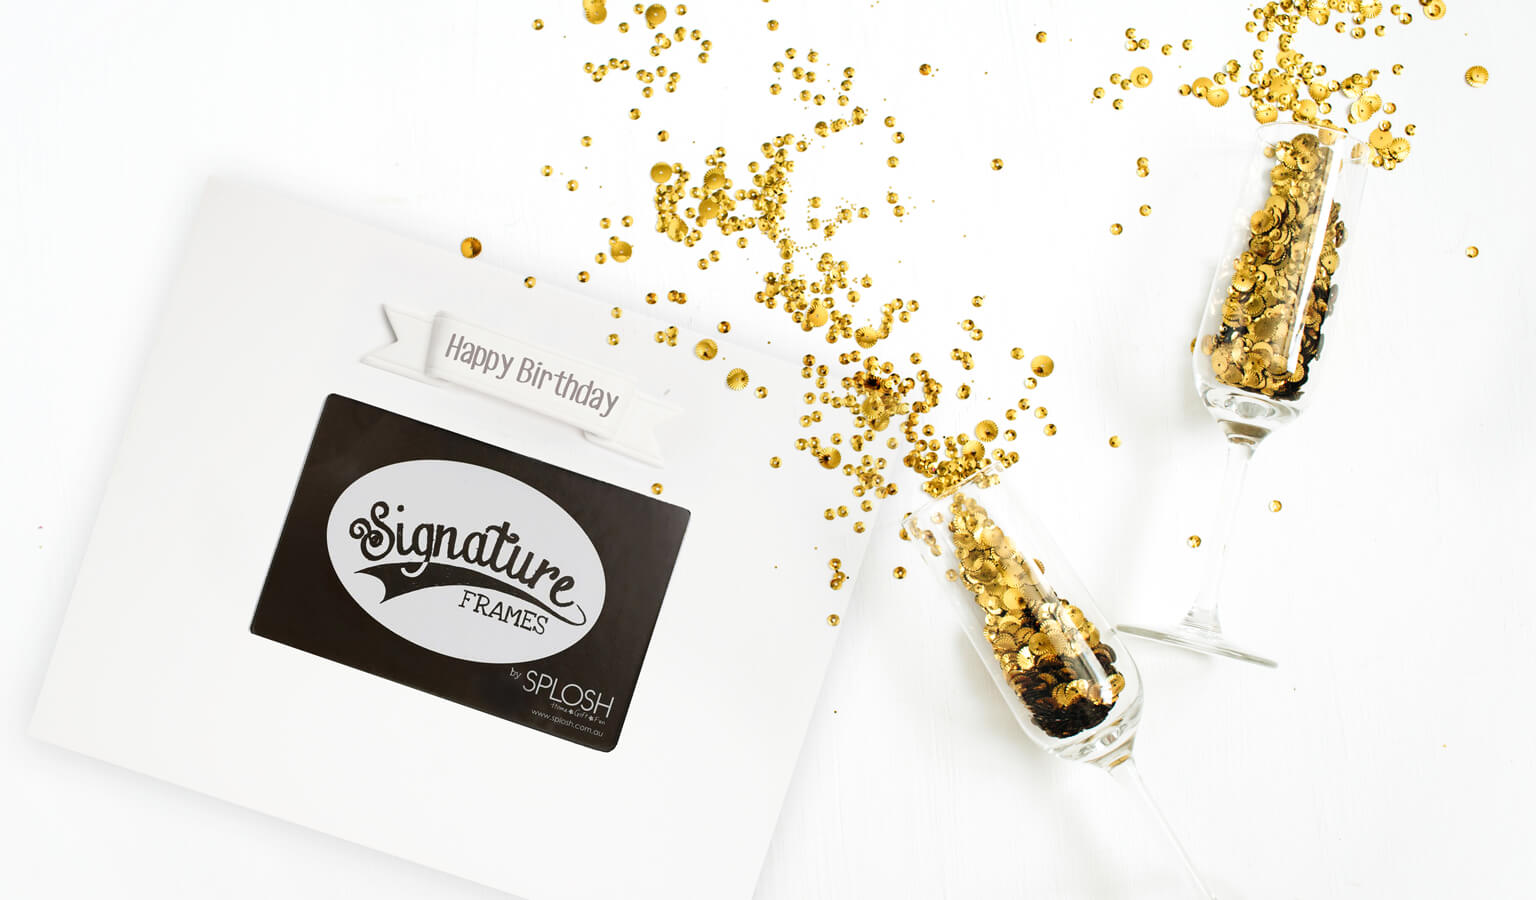 The perfect party memento for every event